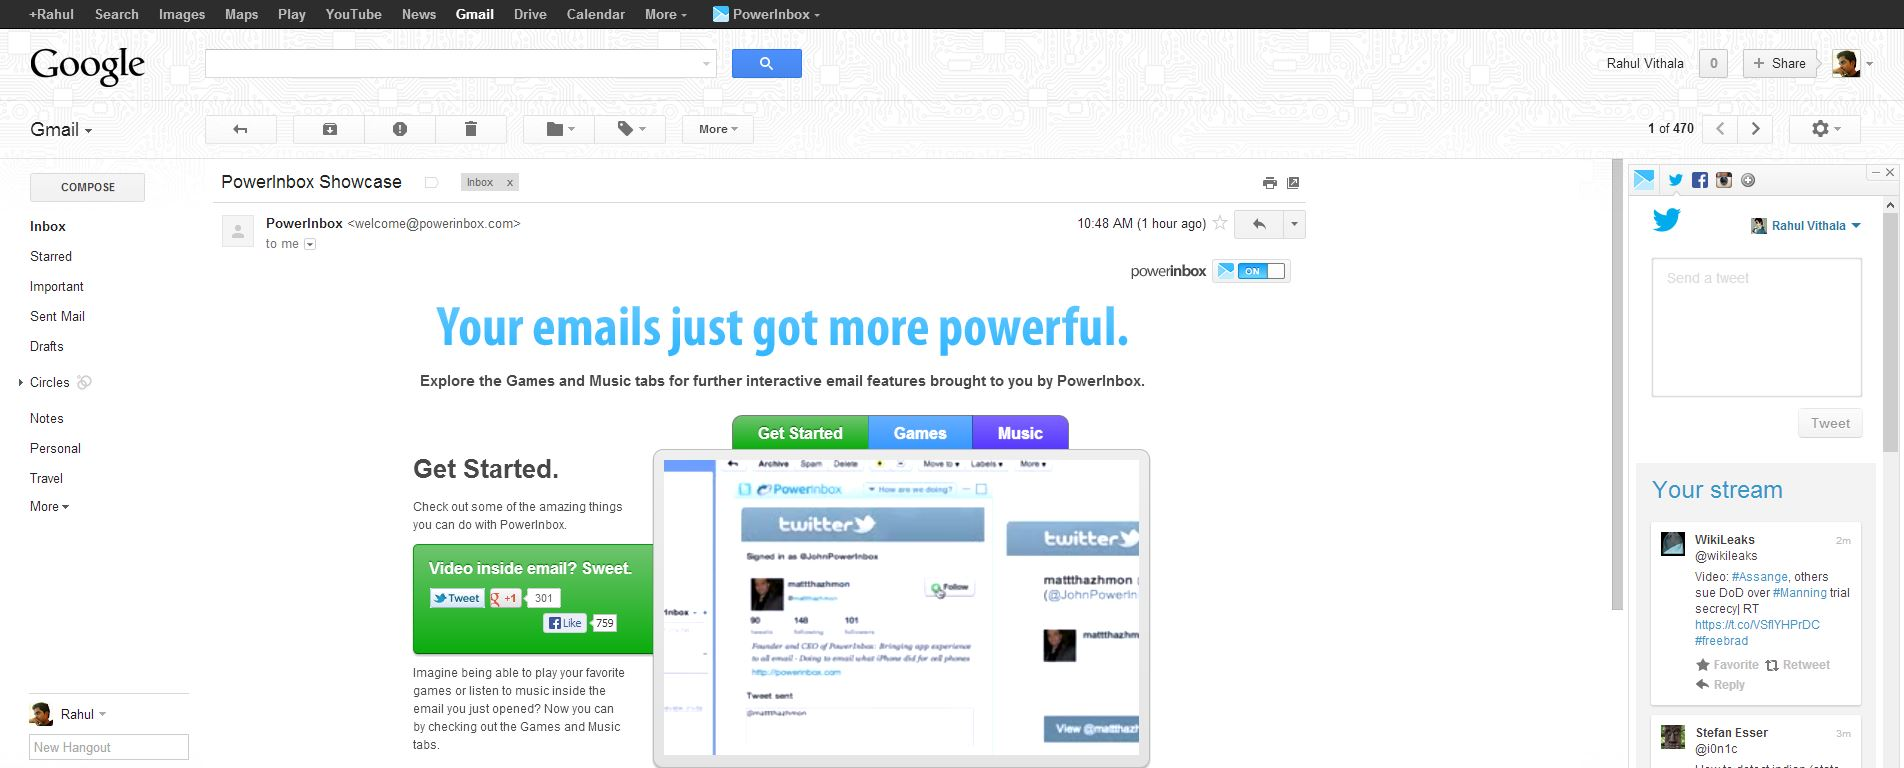 View And Post Social Media Updates From Your Email Account With PowerInbox thetechhacker